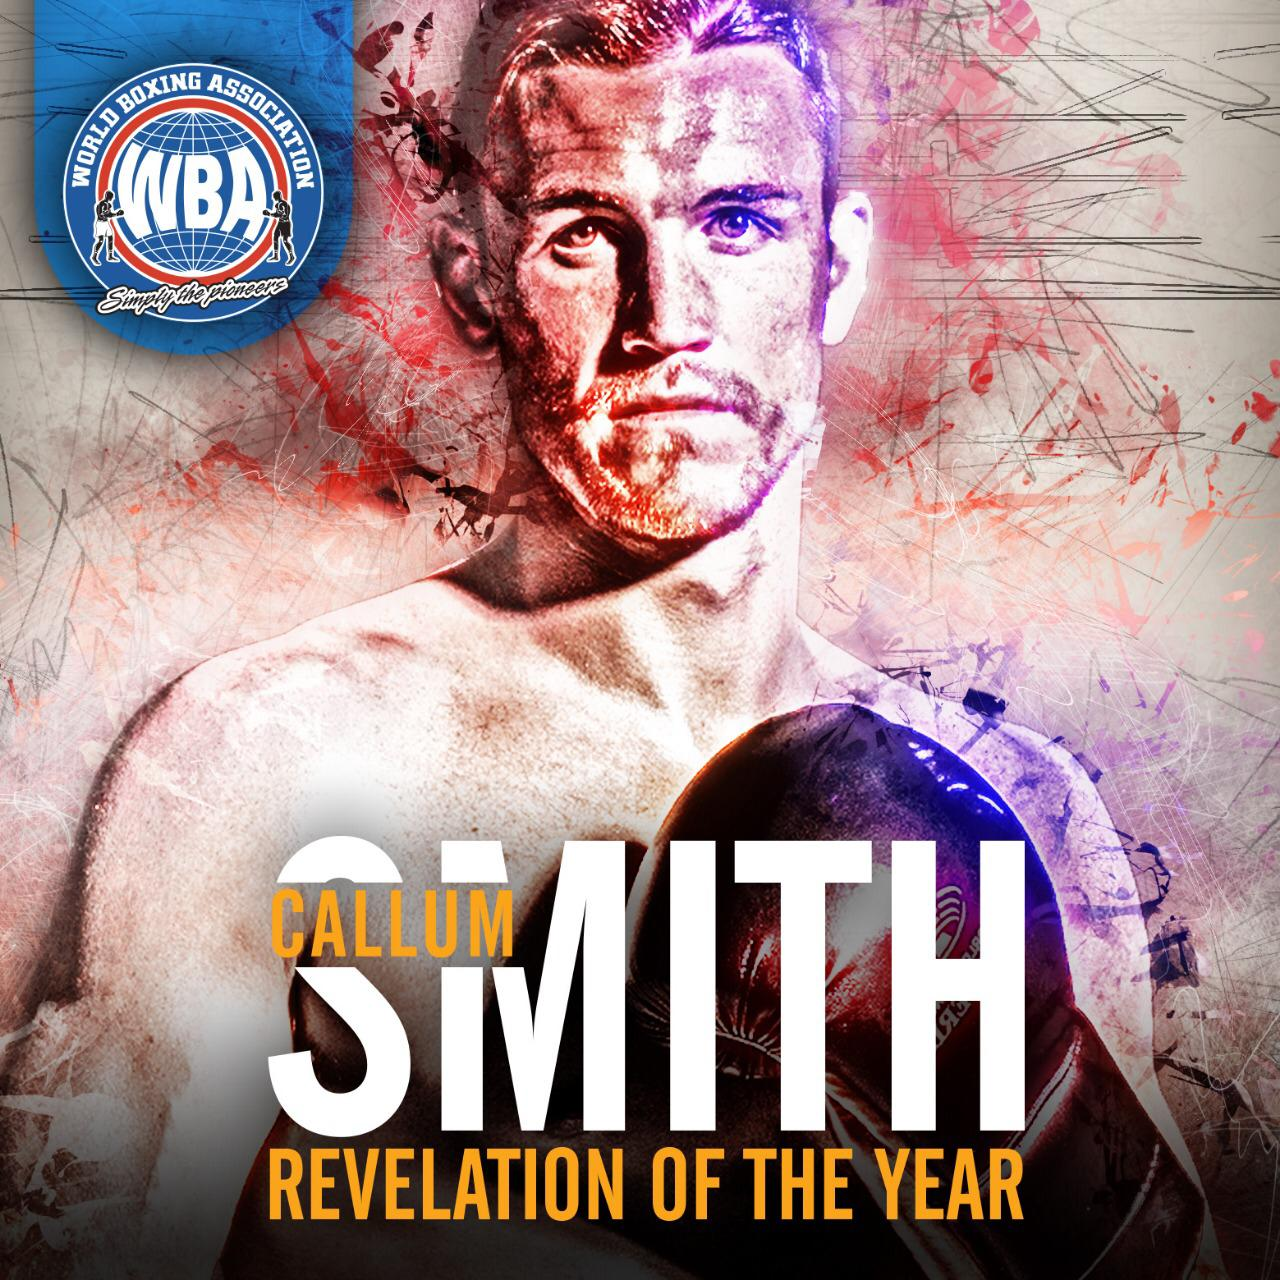 Callum Smith is the WBA Breakout Fighter of the Year